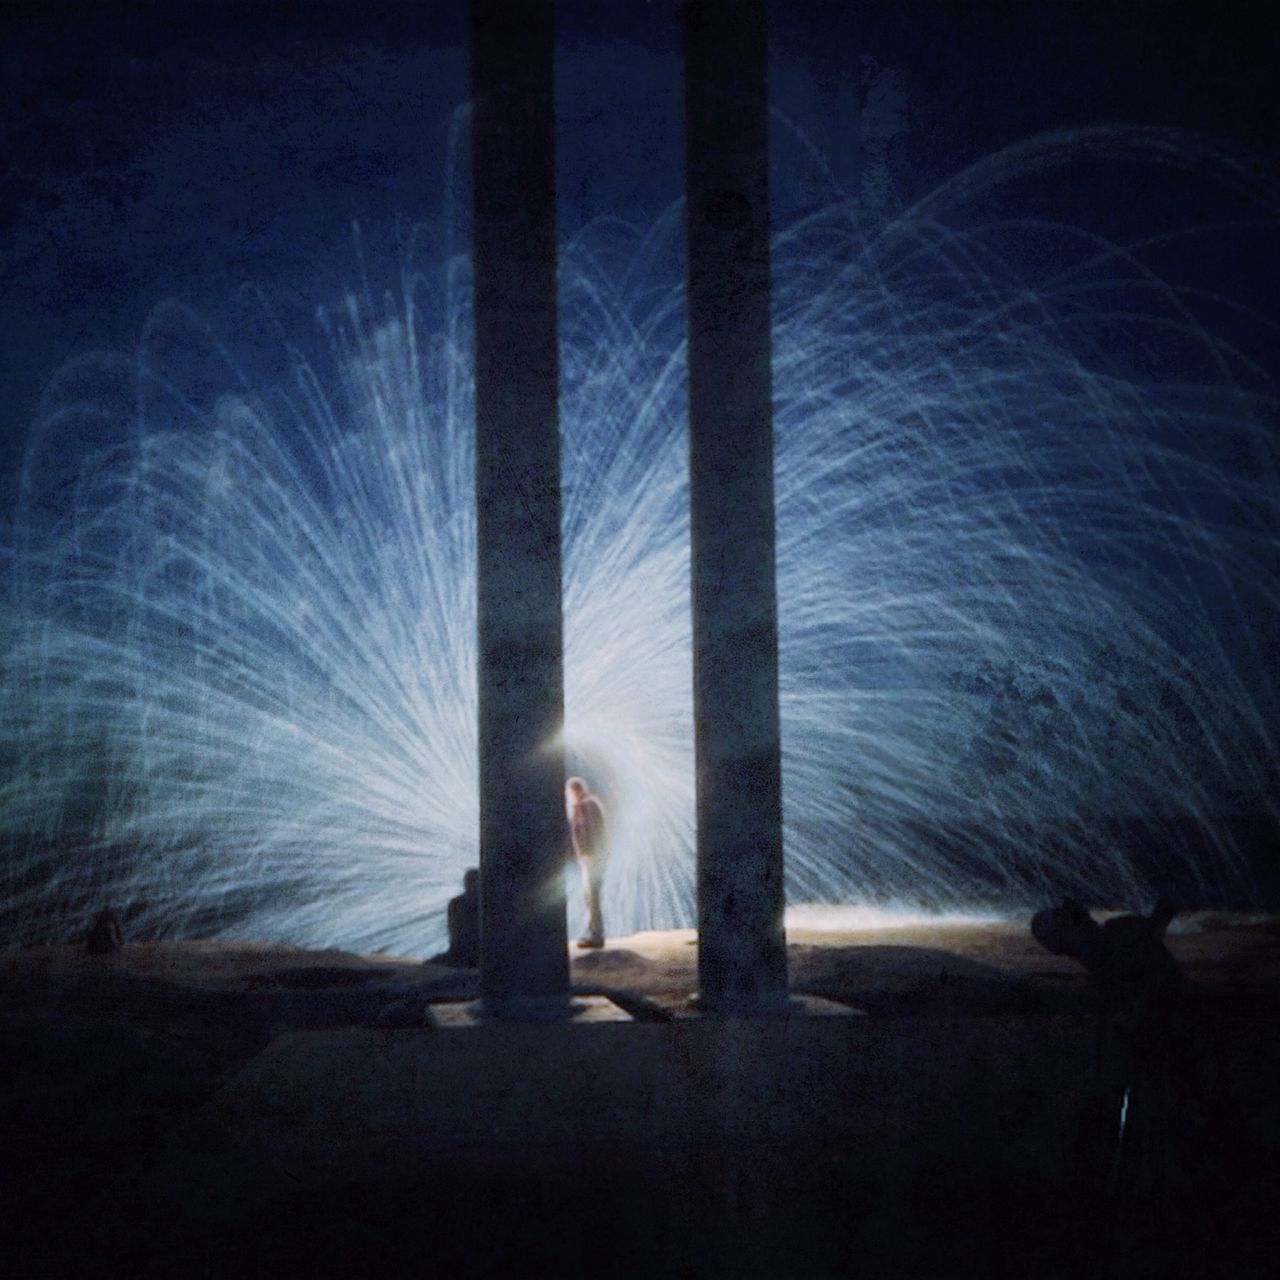 long exposure, motion, illuminated, night, real people, outdoors, standing, one person, wire wool, sky, people